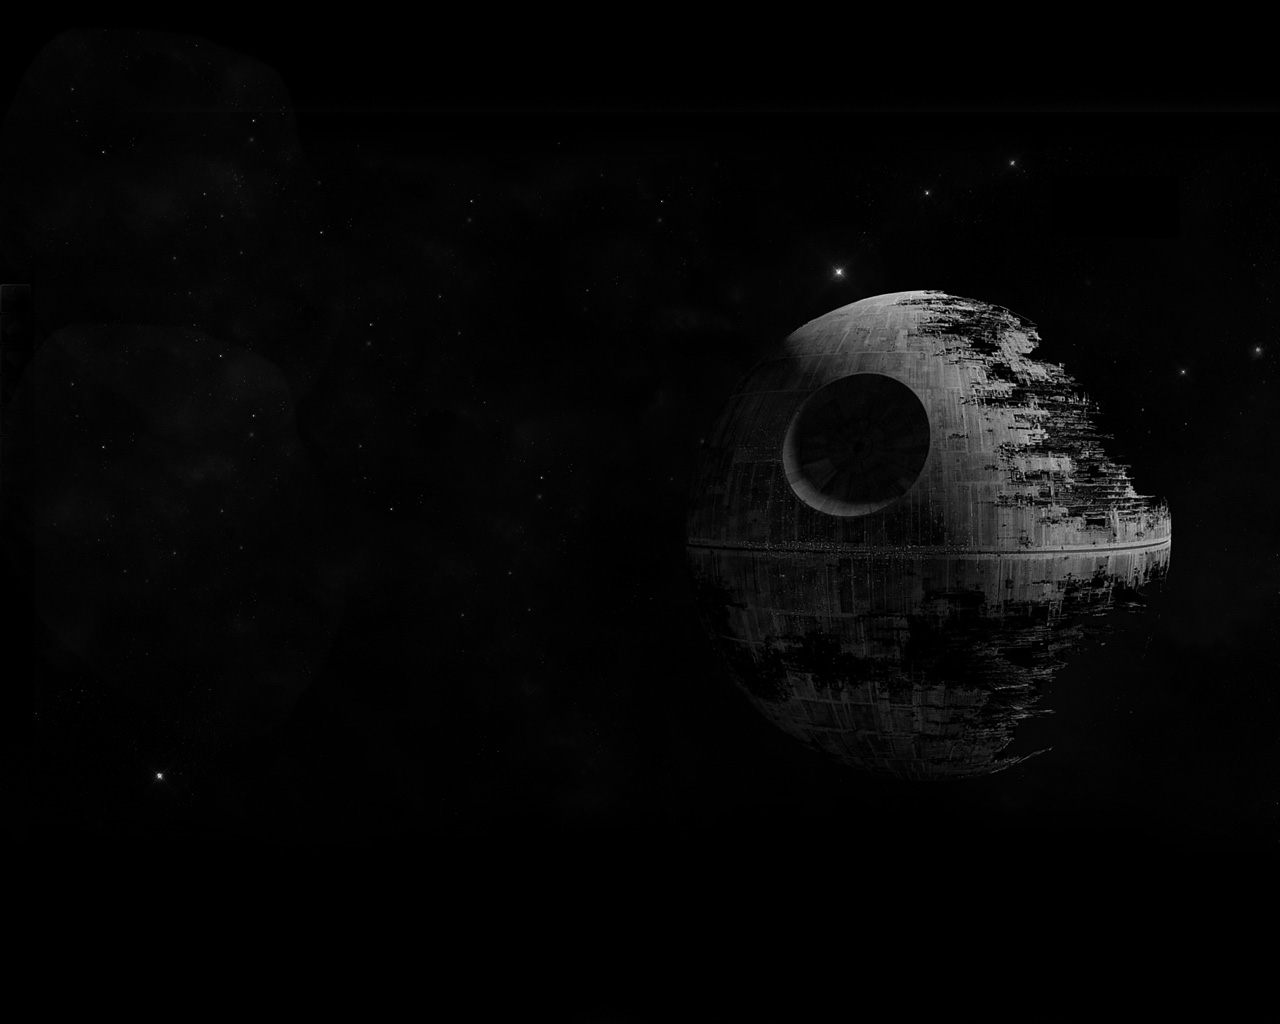 collection of cool desktop wallpaper pictures for Star Wars fans ...